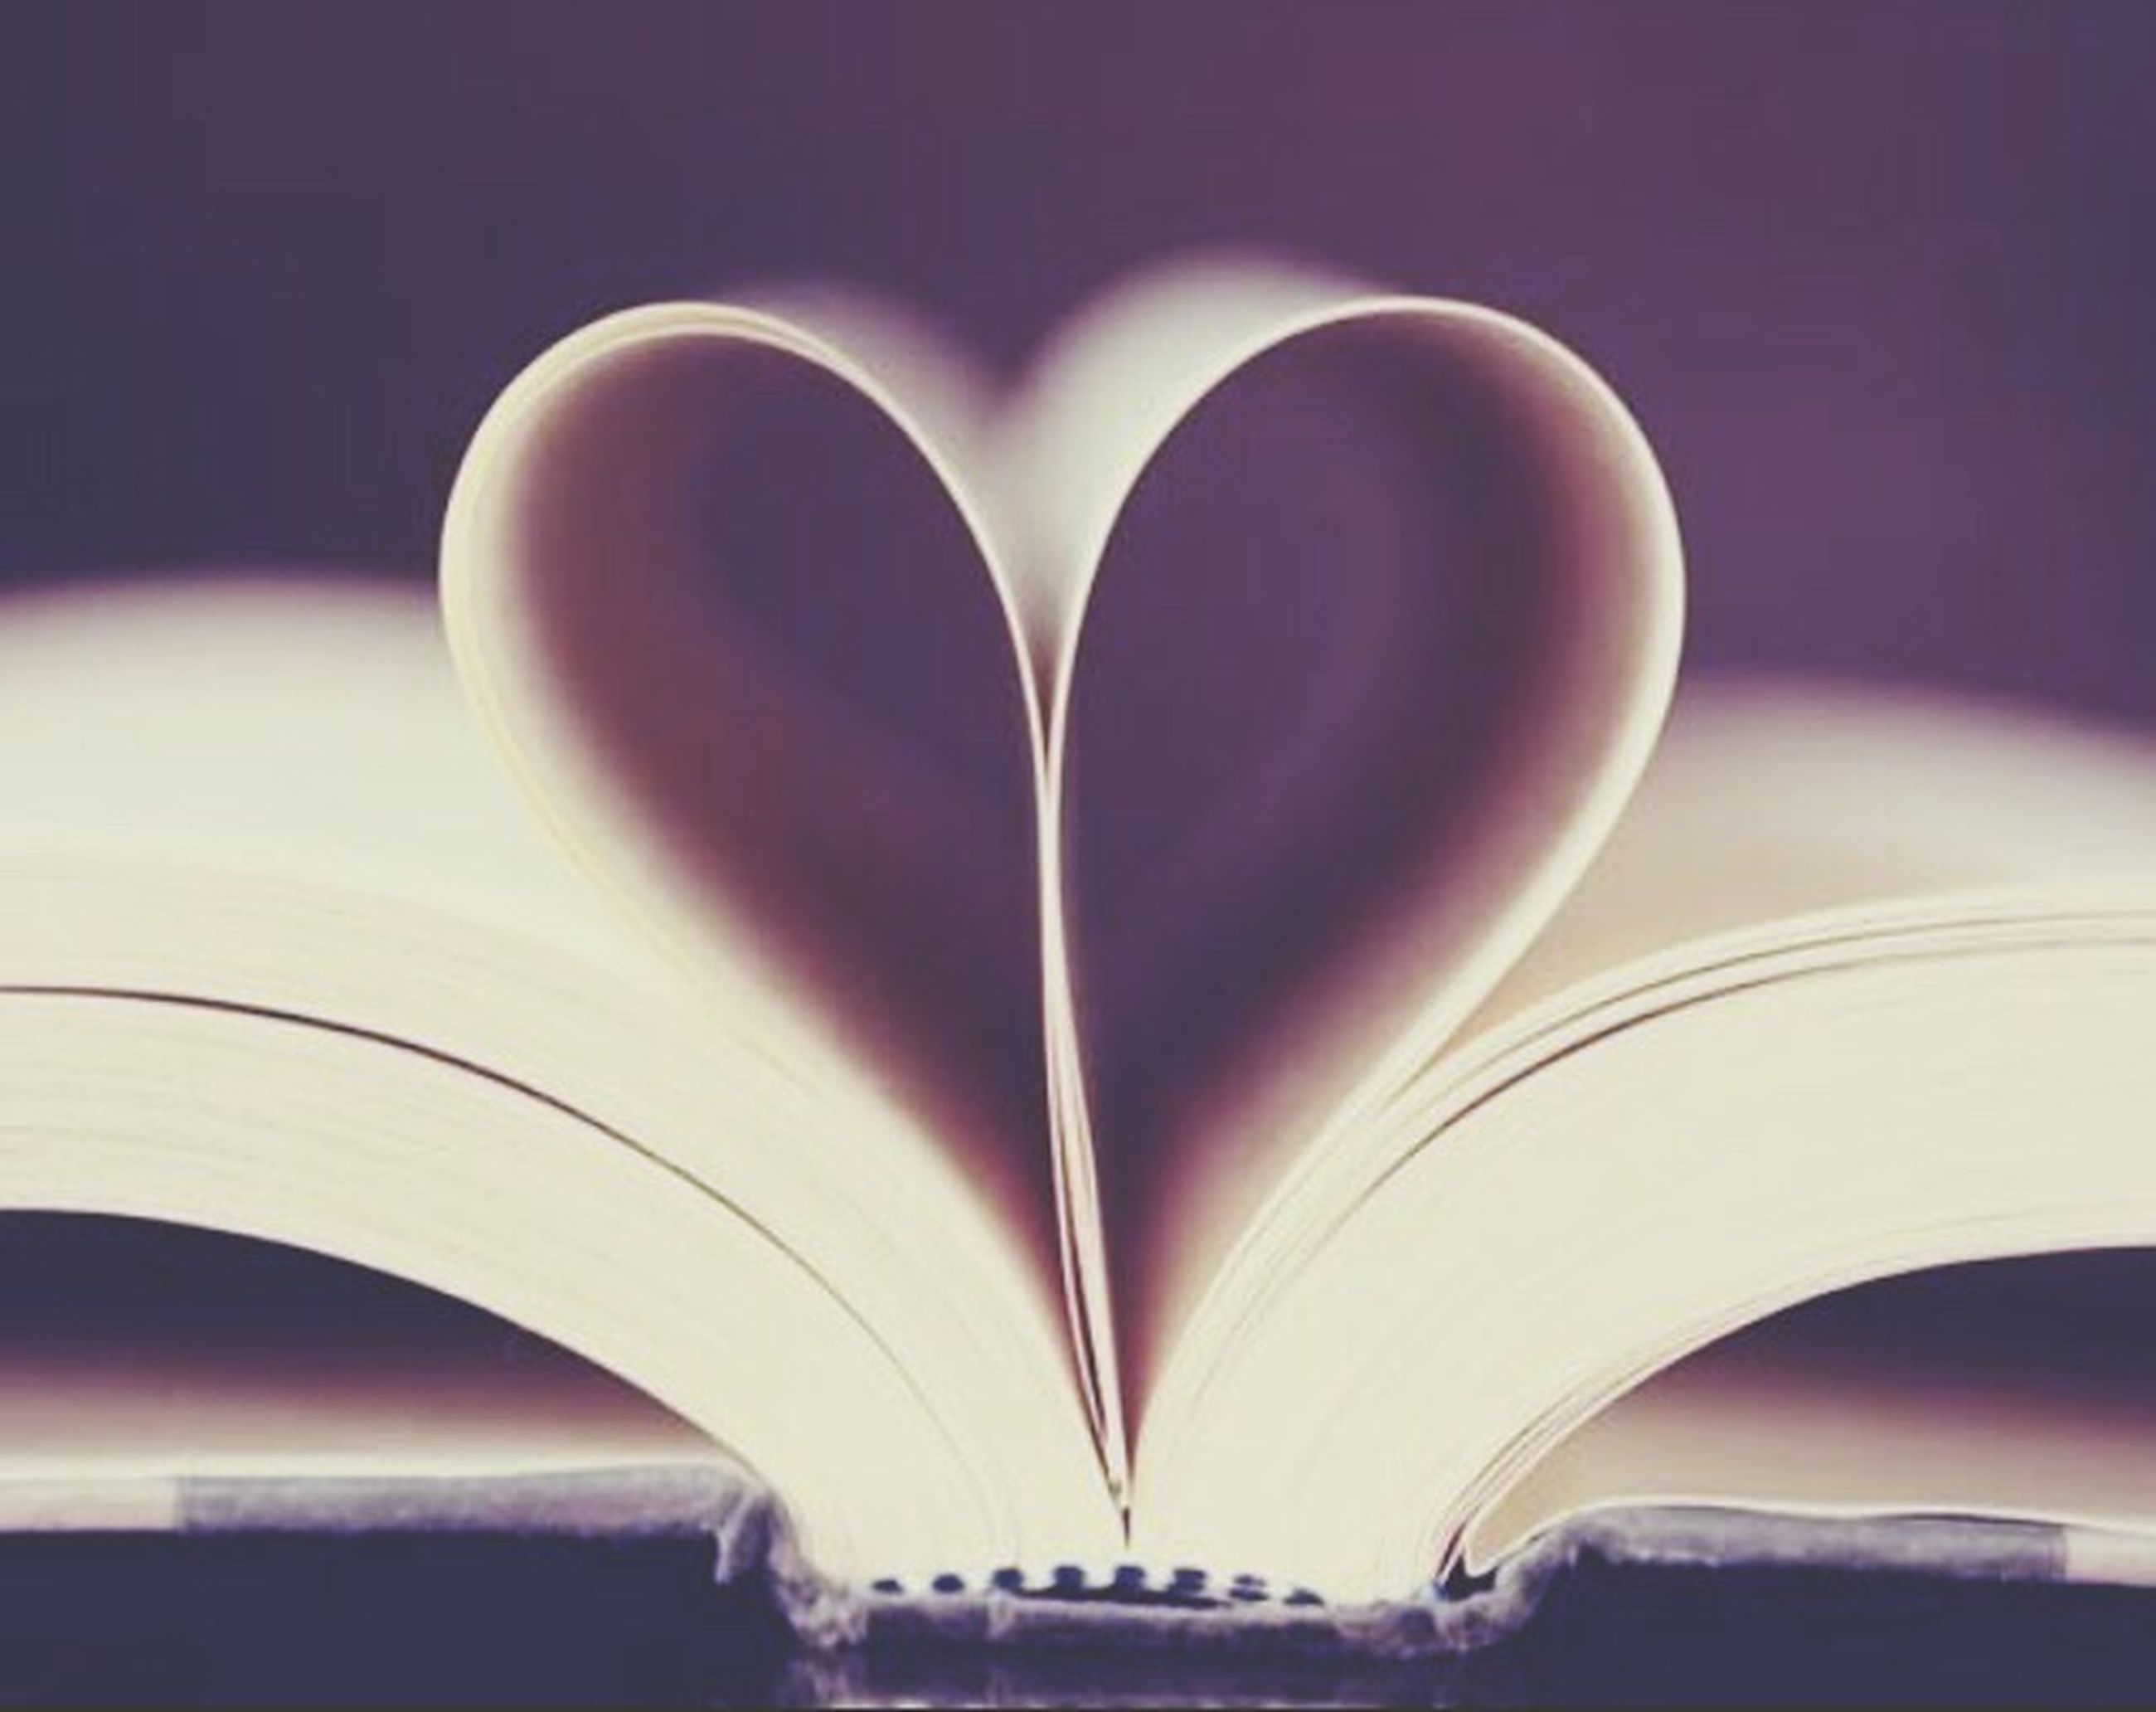 heart shape, book, love, page, education, close-up, open, romance, paper, no people, wisdom